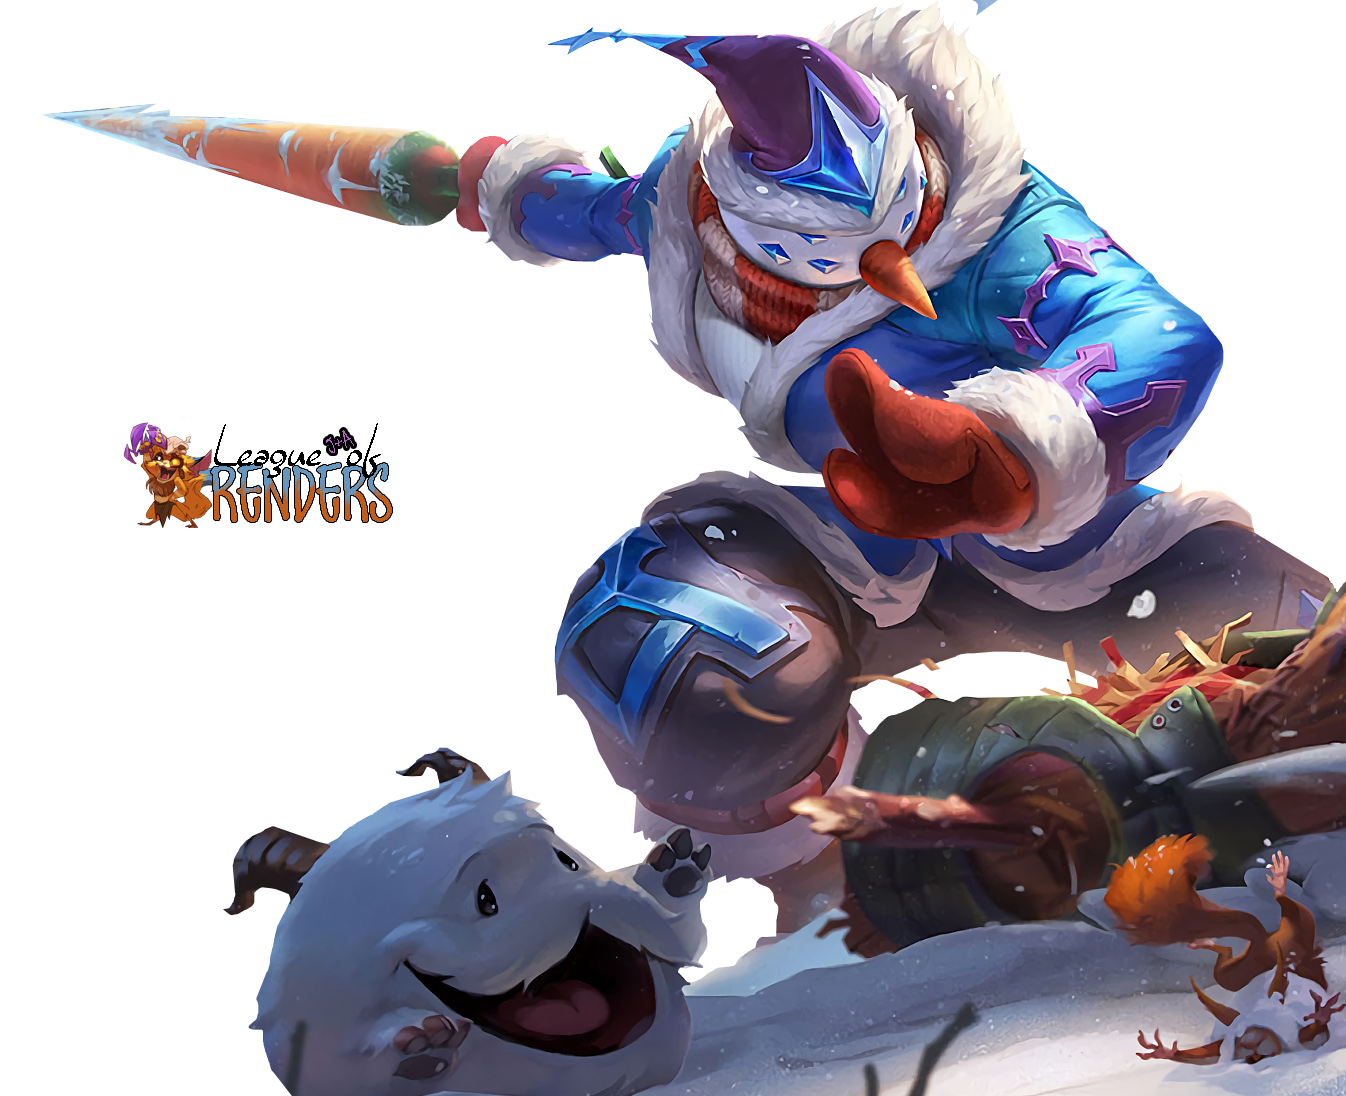 RENDER SNOW MAN YI